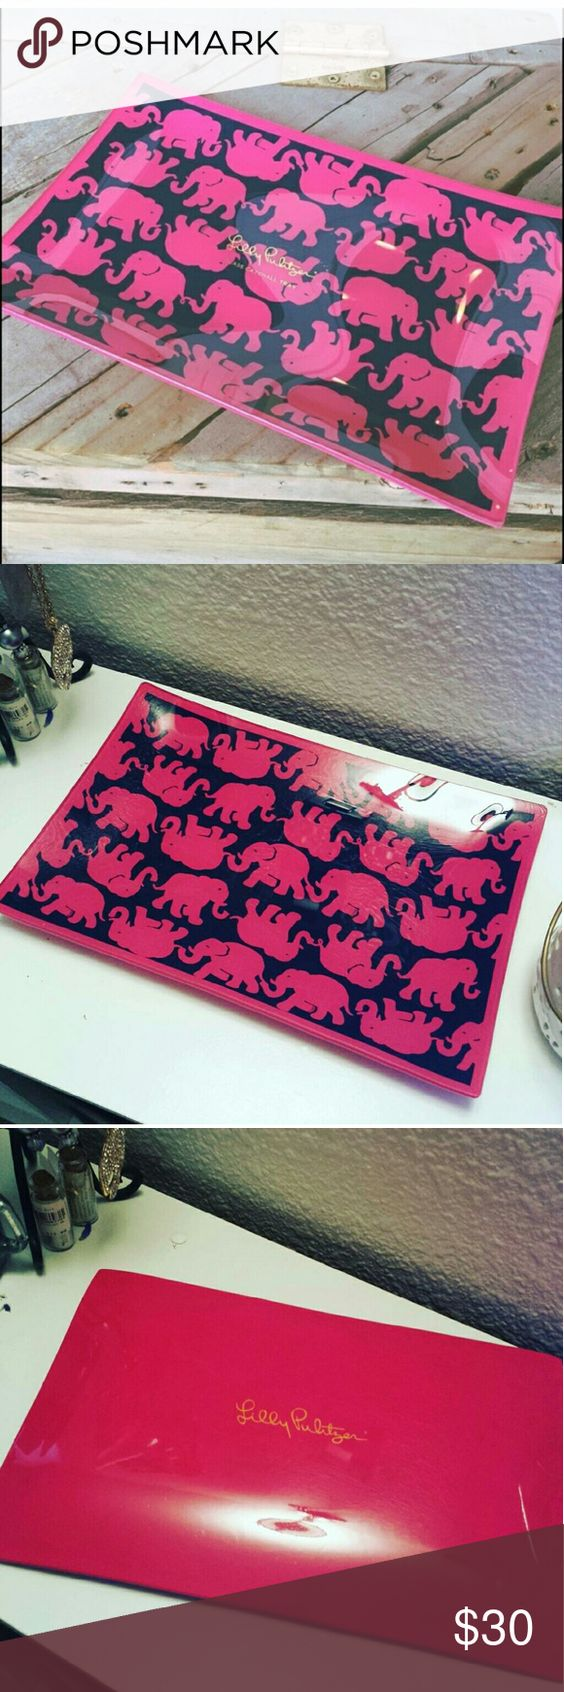 Lilly Pulitzer Elephant Tray Like new. Large glass tray. Perfect for jewelry, lotions, ect. Makes darling decor for any lilly lover. Lilly Pulitzer Accessories